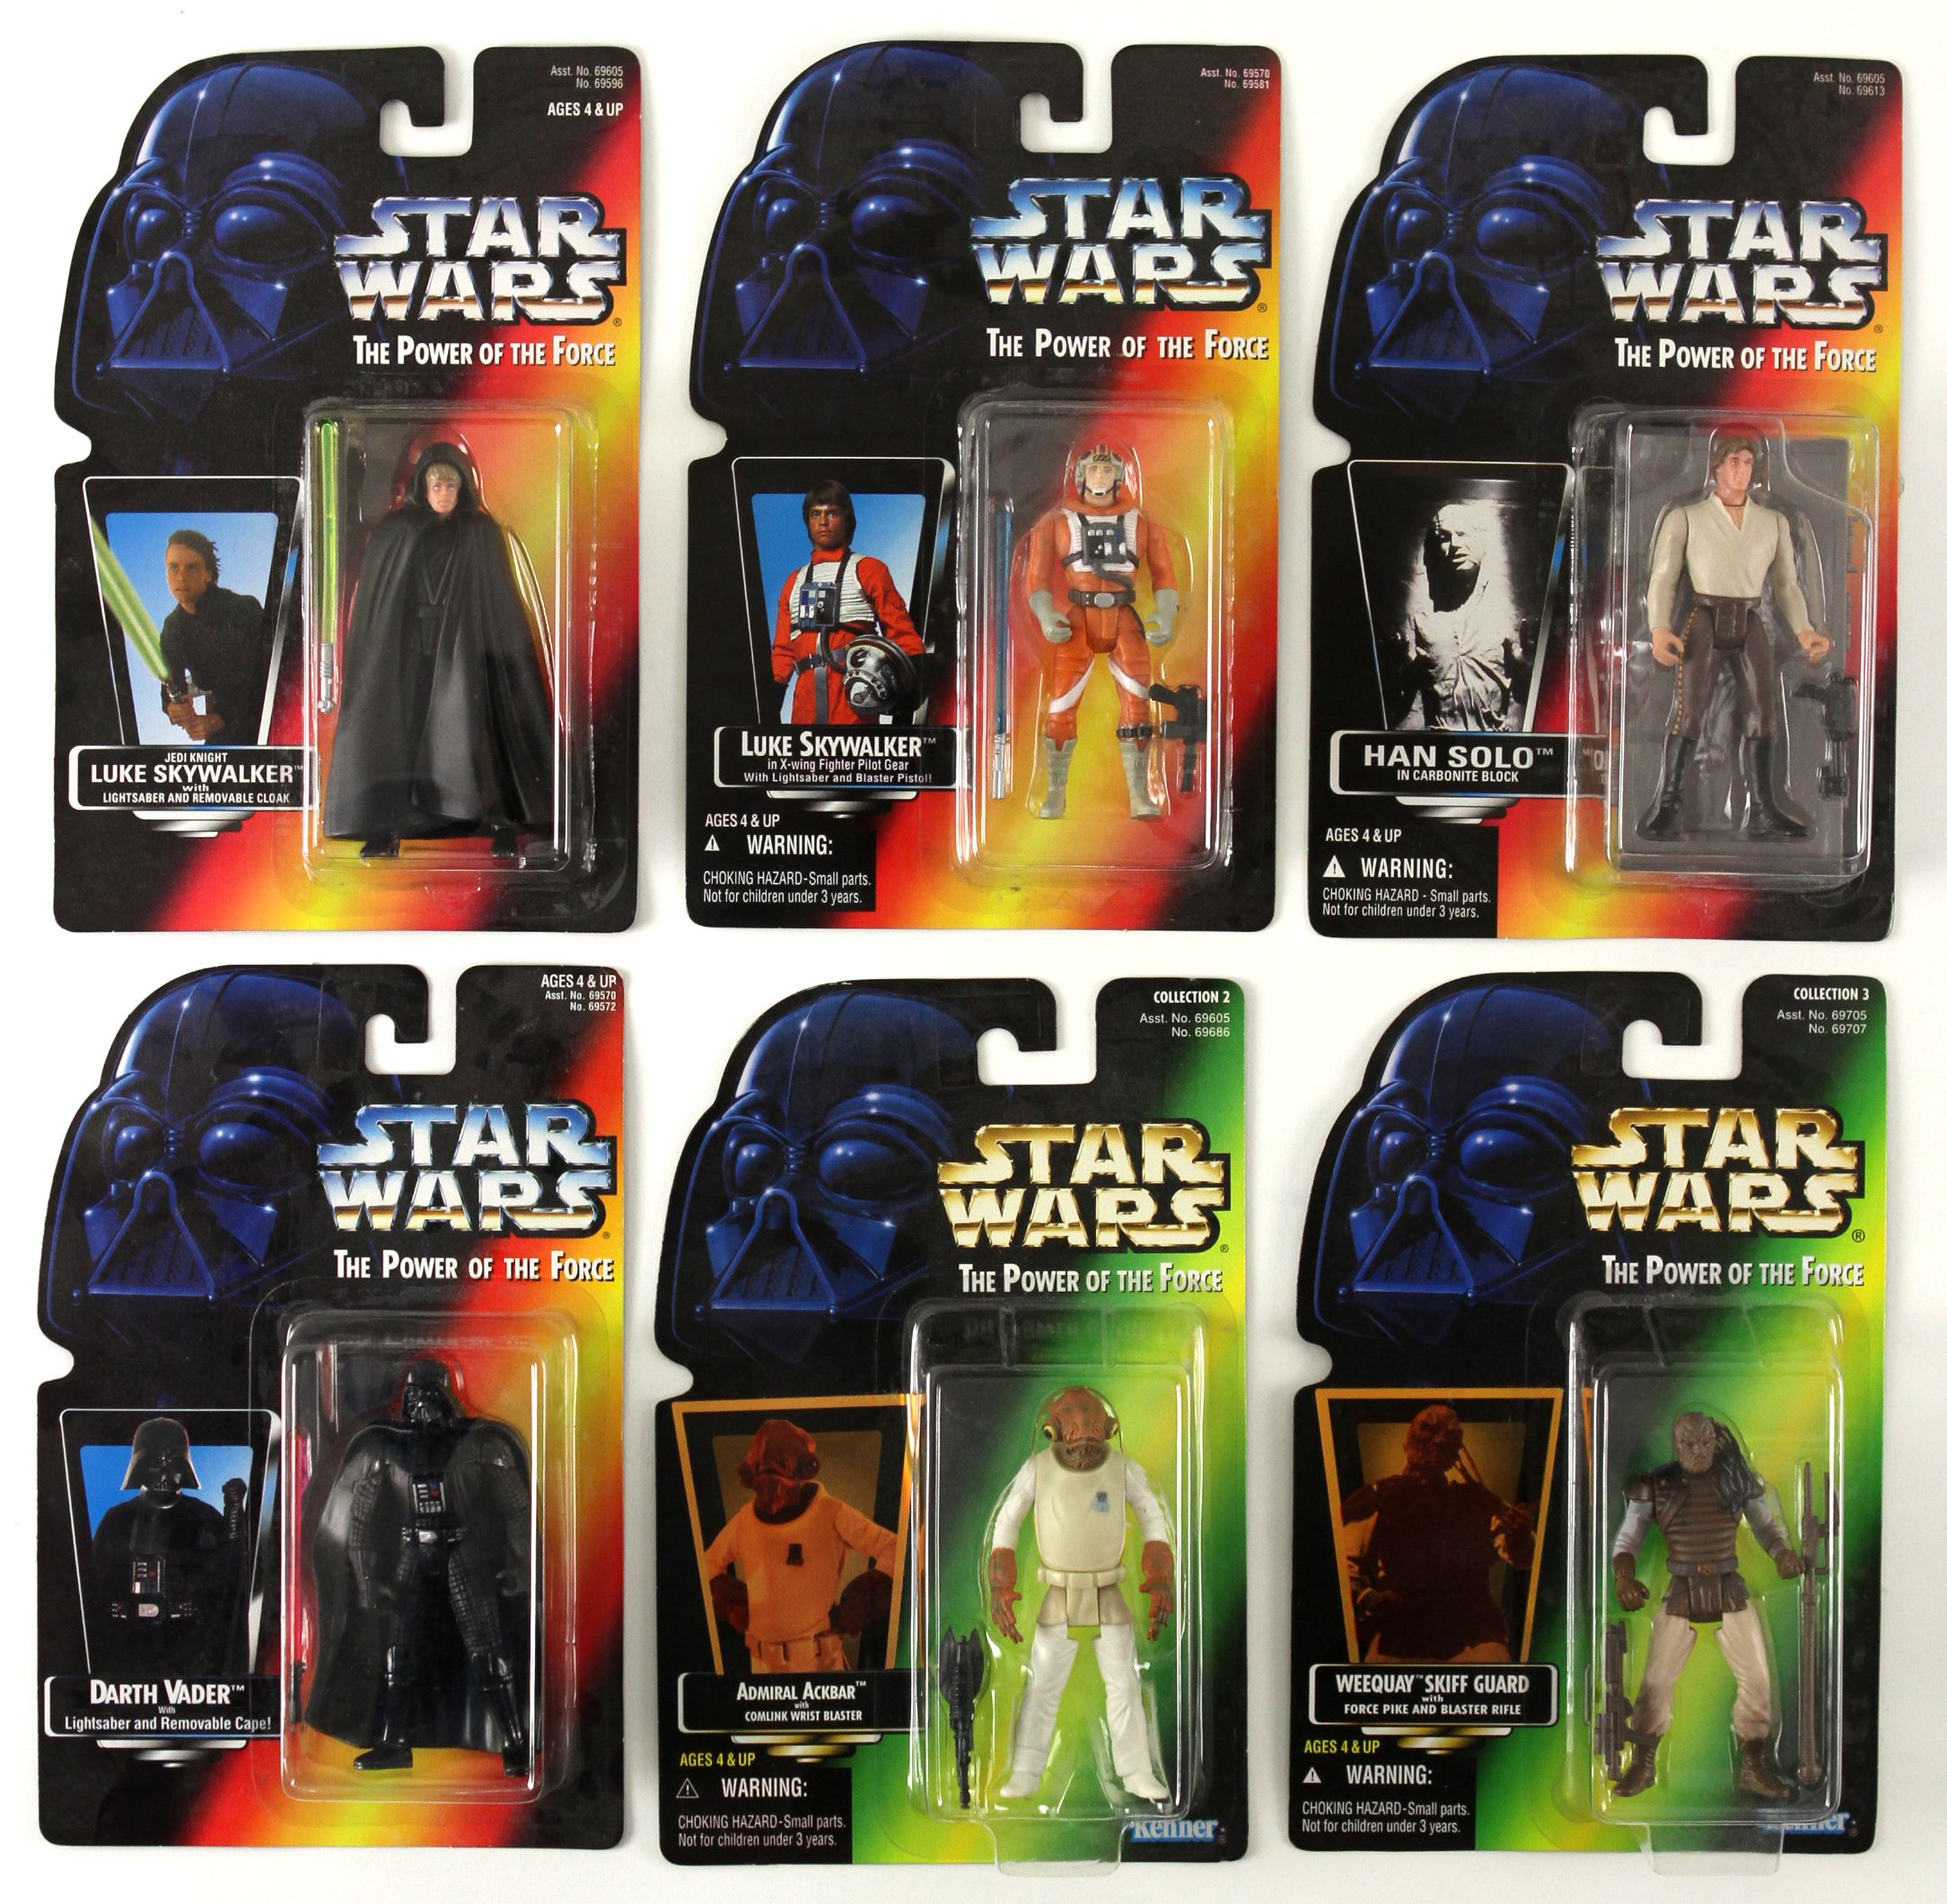 What Are the Star Wars Vintage Figures